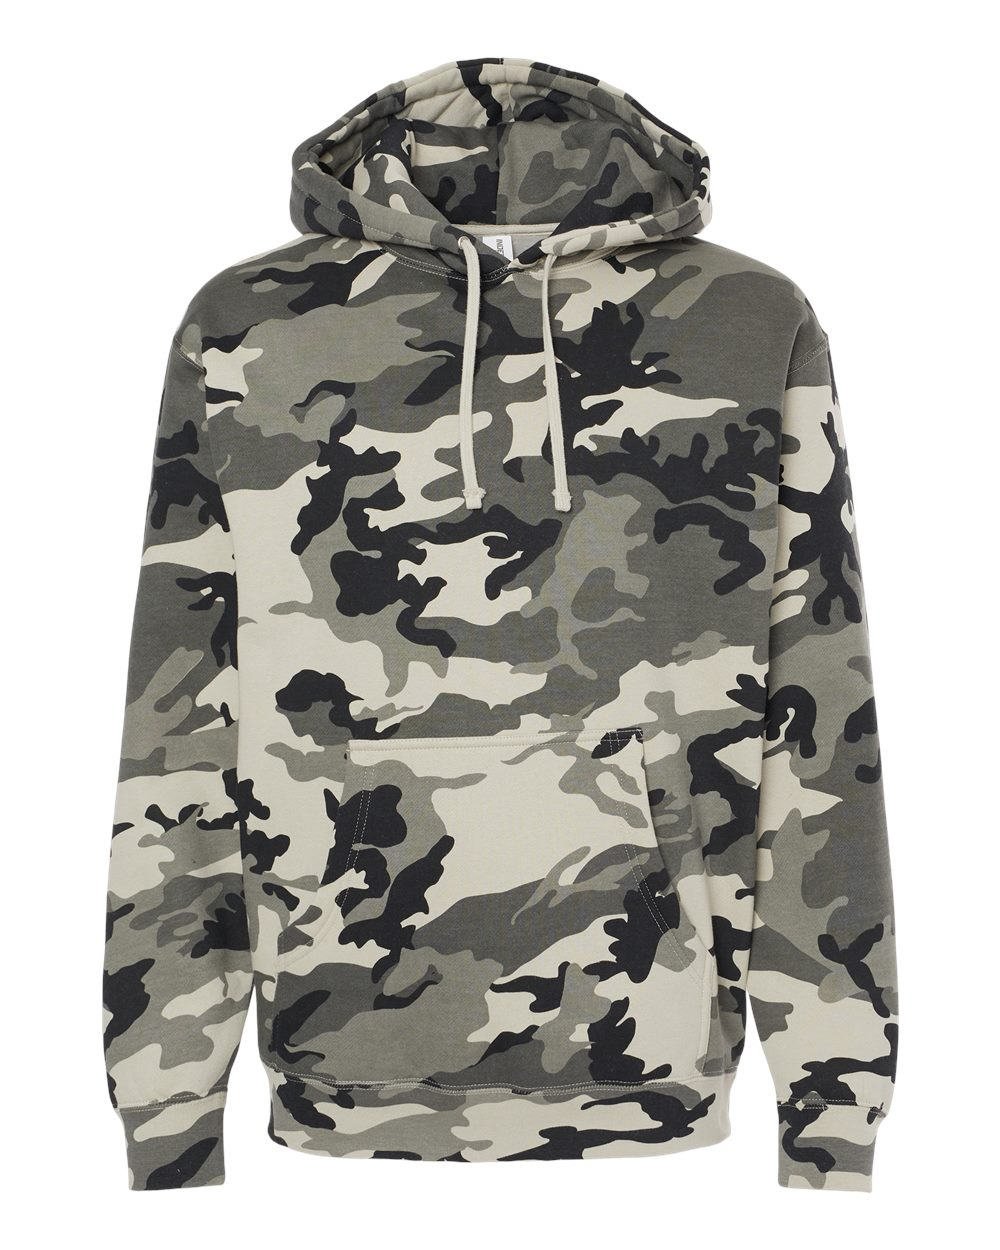 Independent-Trading-Co-Mens-Hooded-Pullover-Sweatshirt-IND4000-up-to-3XL miniature 81